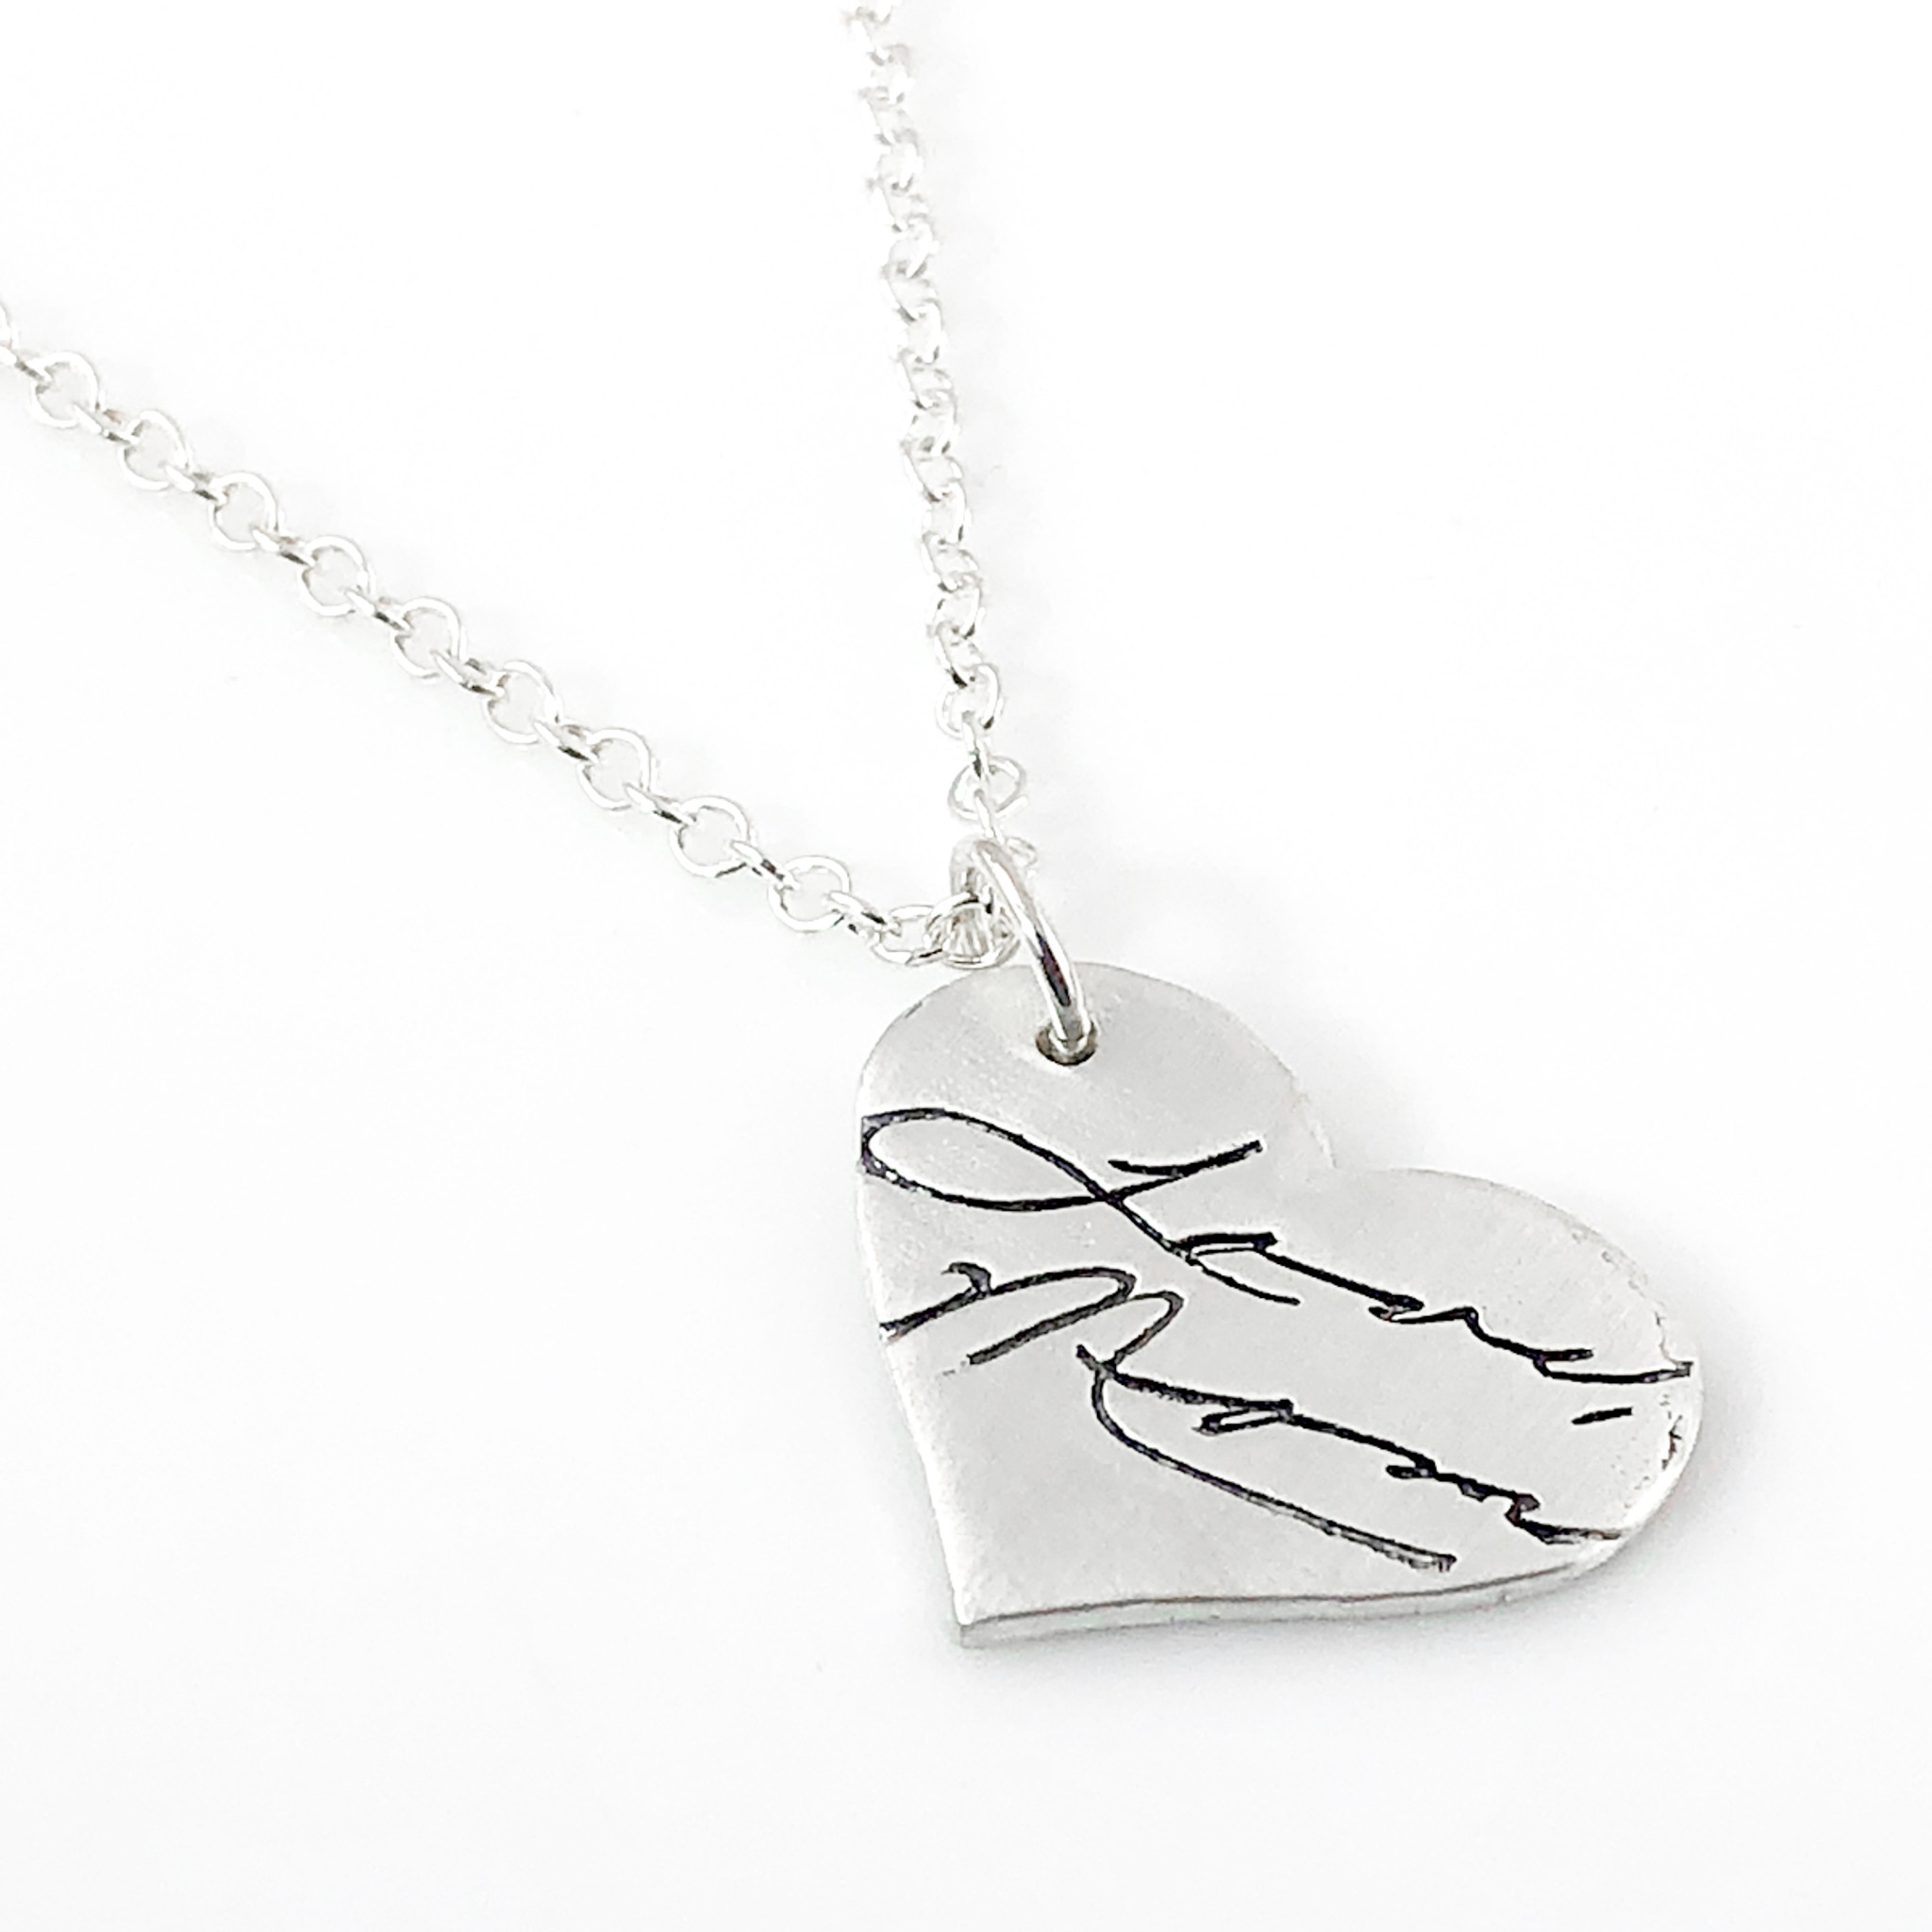 NOW AVAILABLE...jewelry created from actual handwriting or artwork!